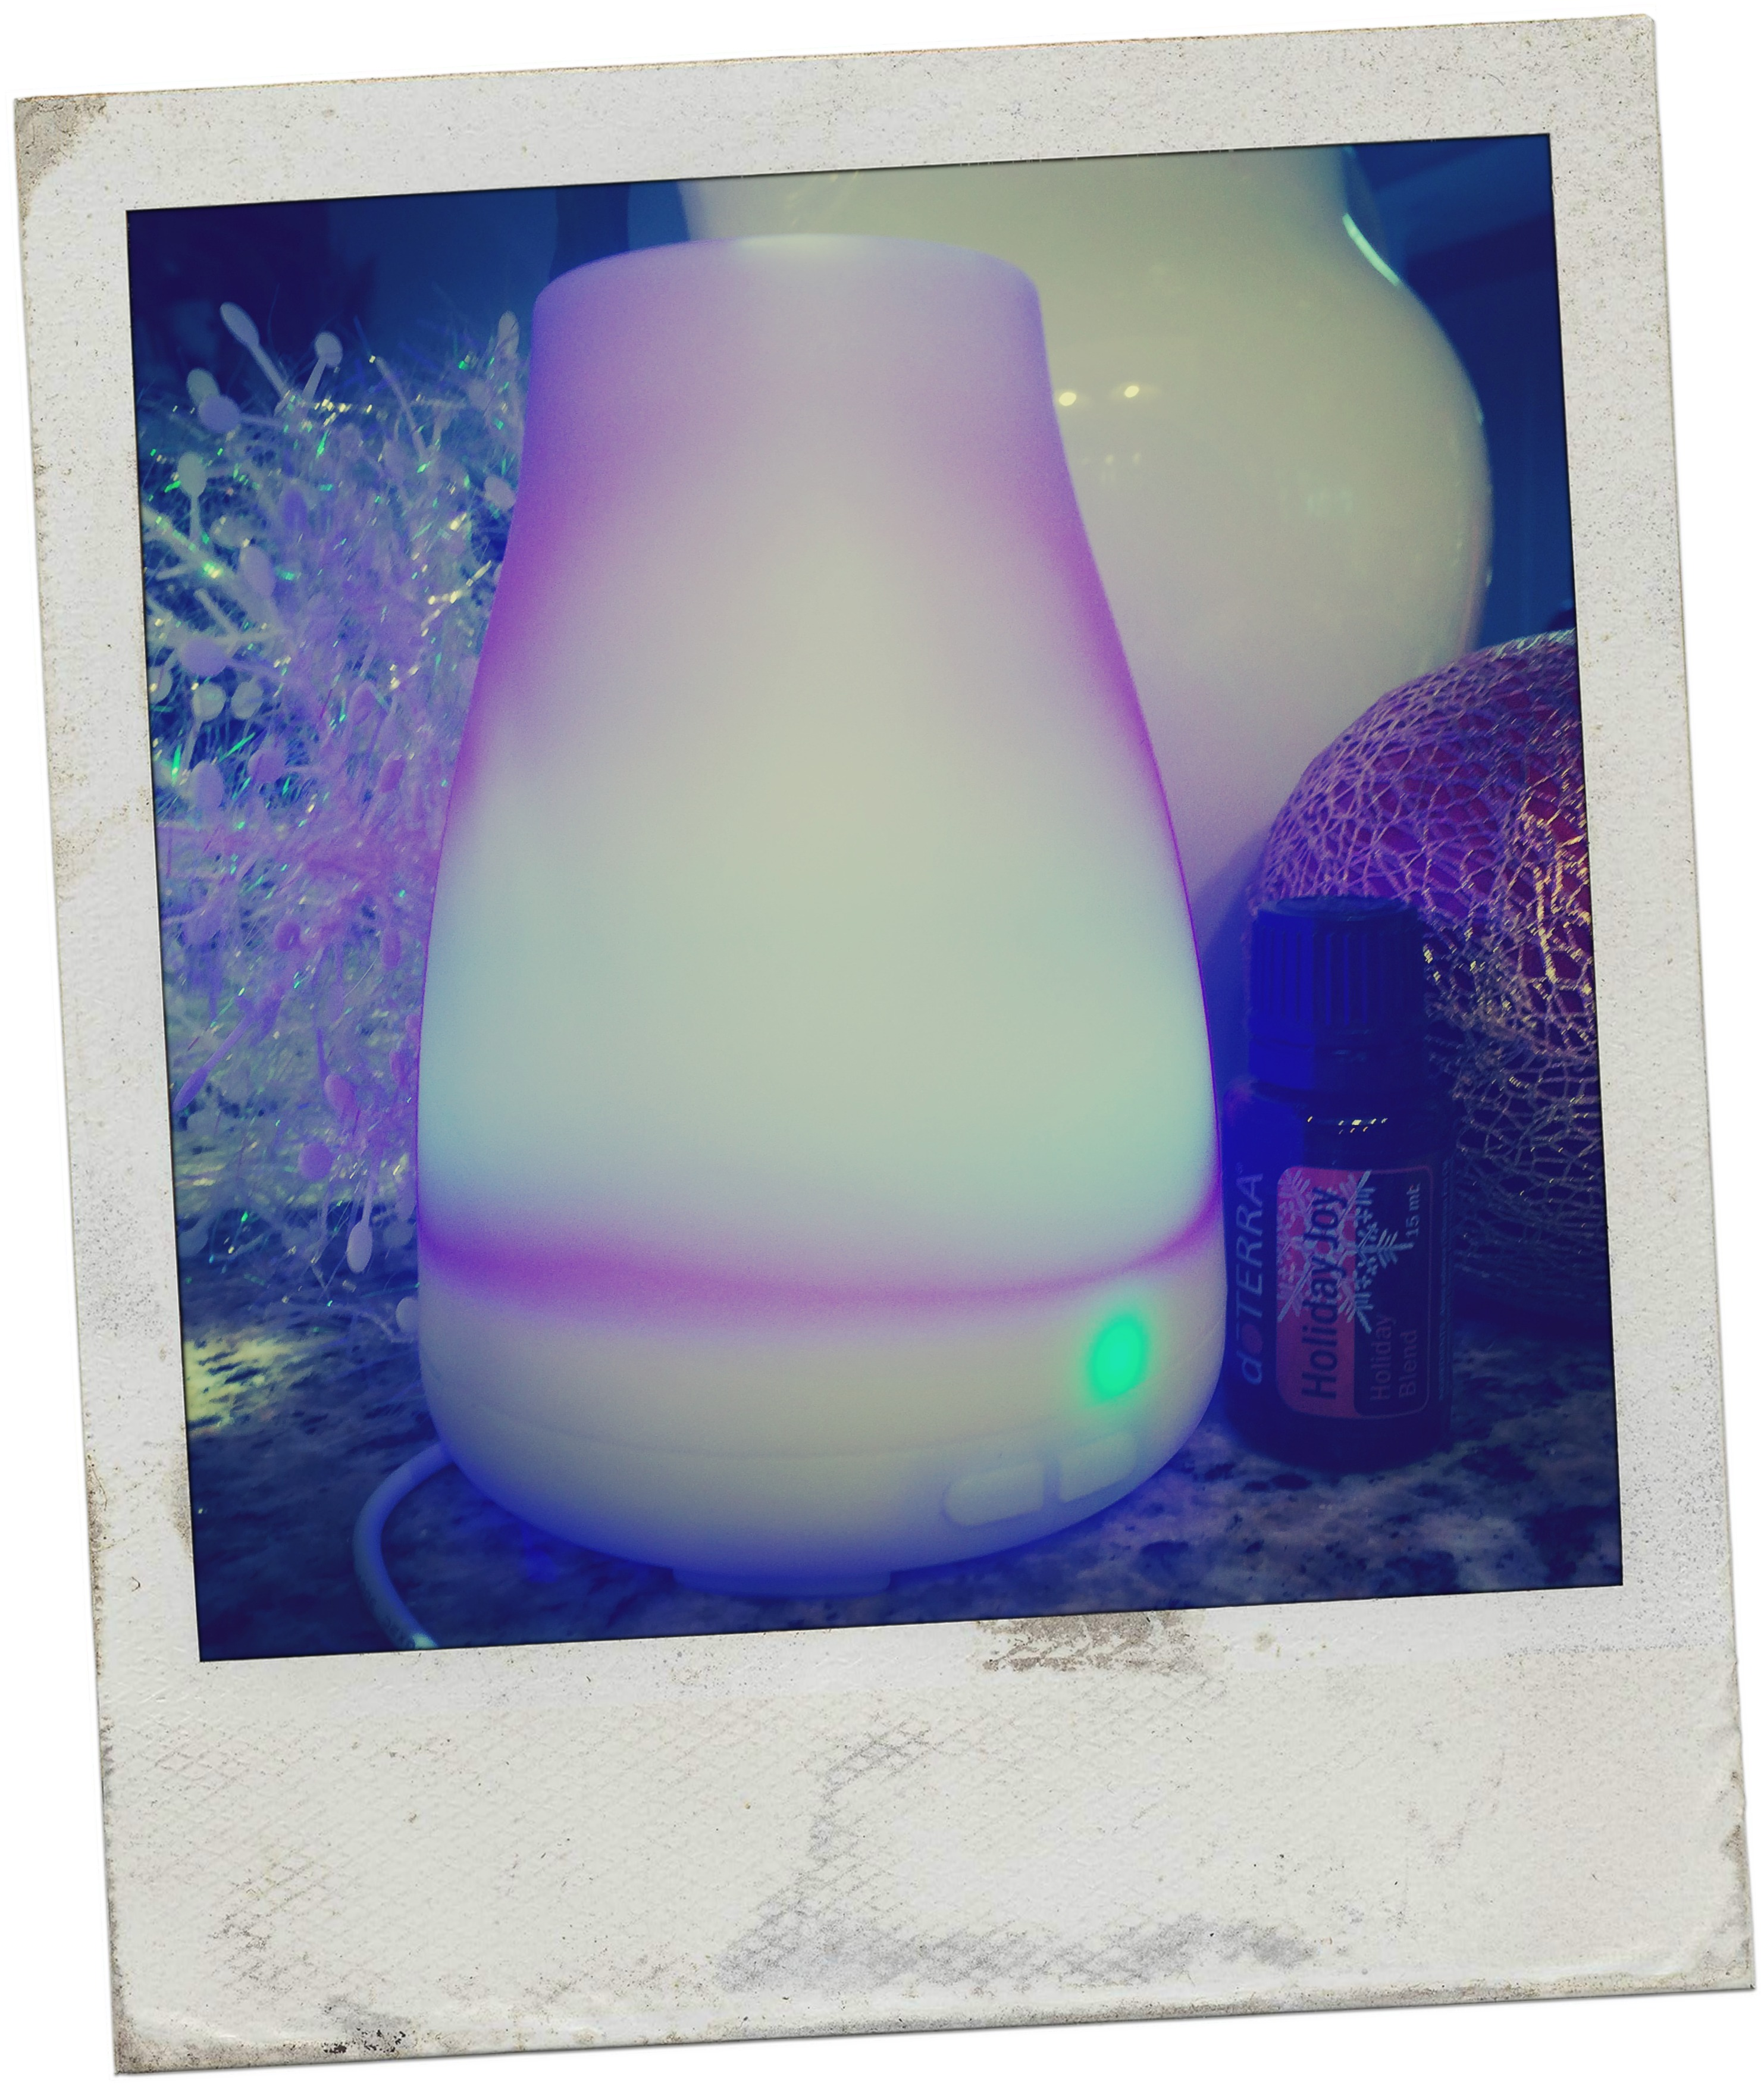 Our diffuser piping away essential oils as usual:-)